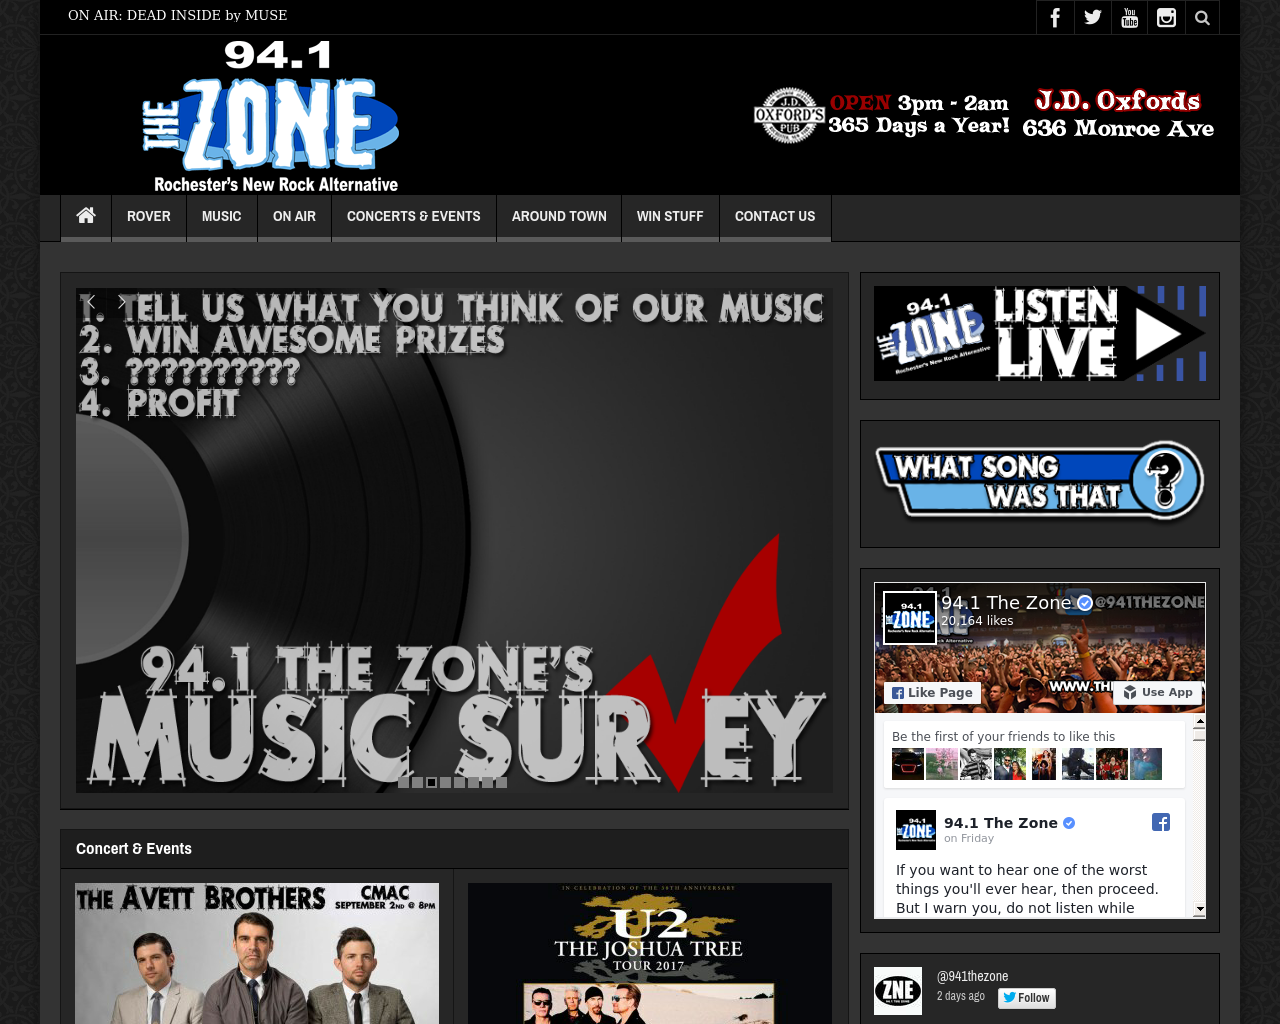 The-Zone-94.1-Advertising-Reviews-Pricing